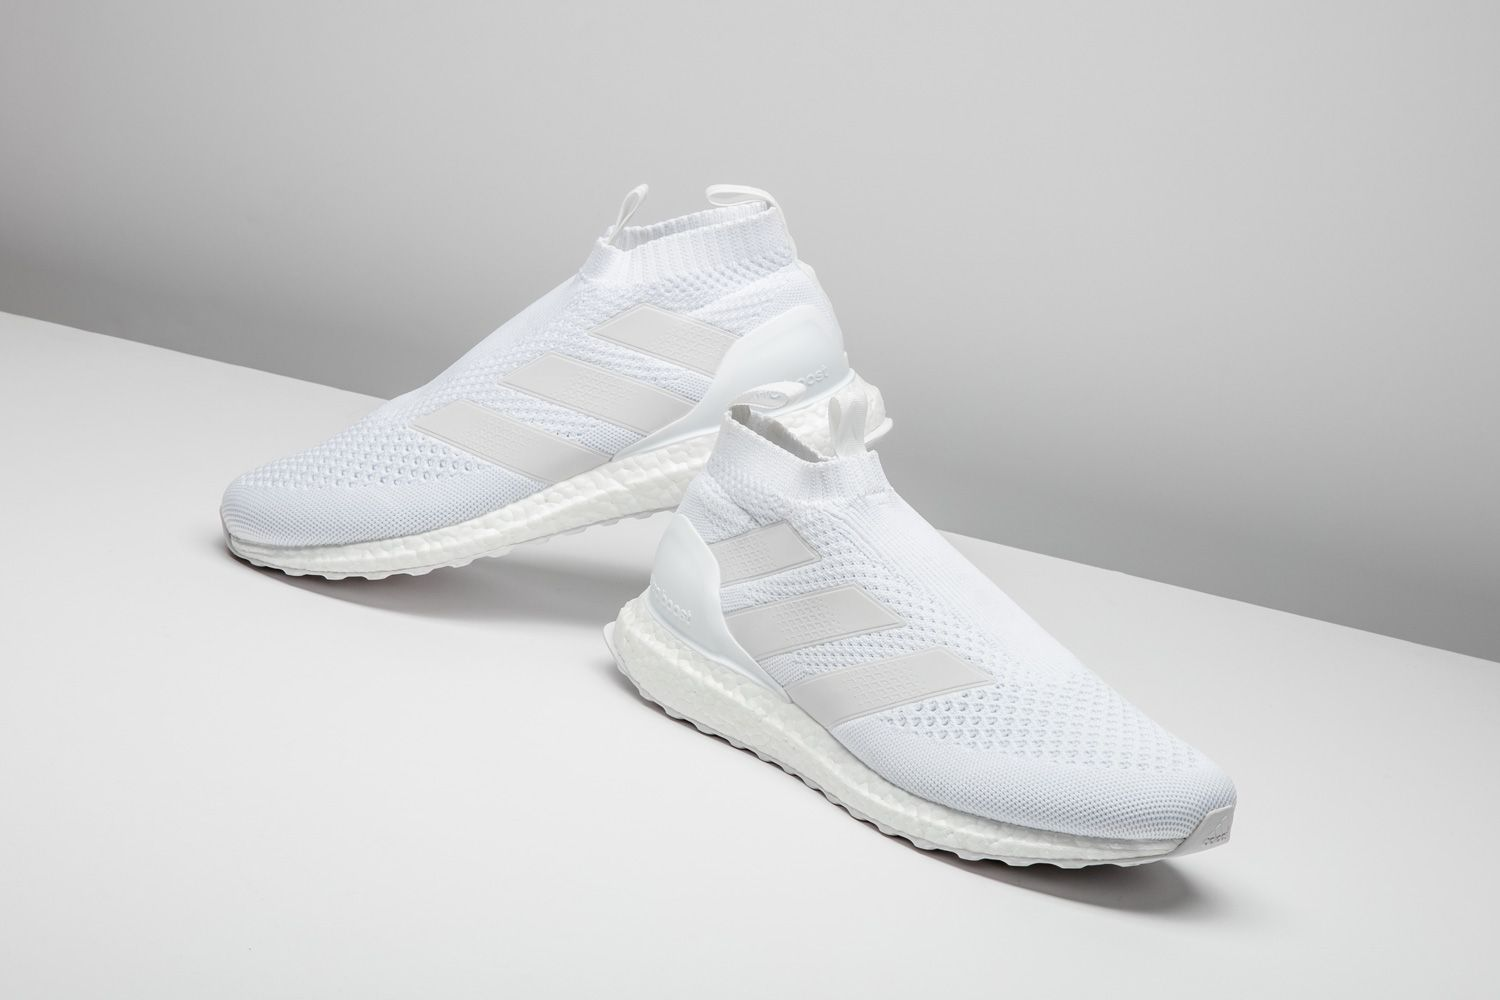 f3ce61d85 The adidas ACE 16+ Purecontrol Ultra Boost in the icy white colorway is a  fall winter essential.  adidas